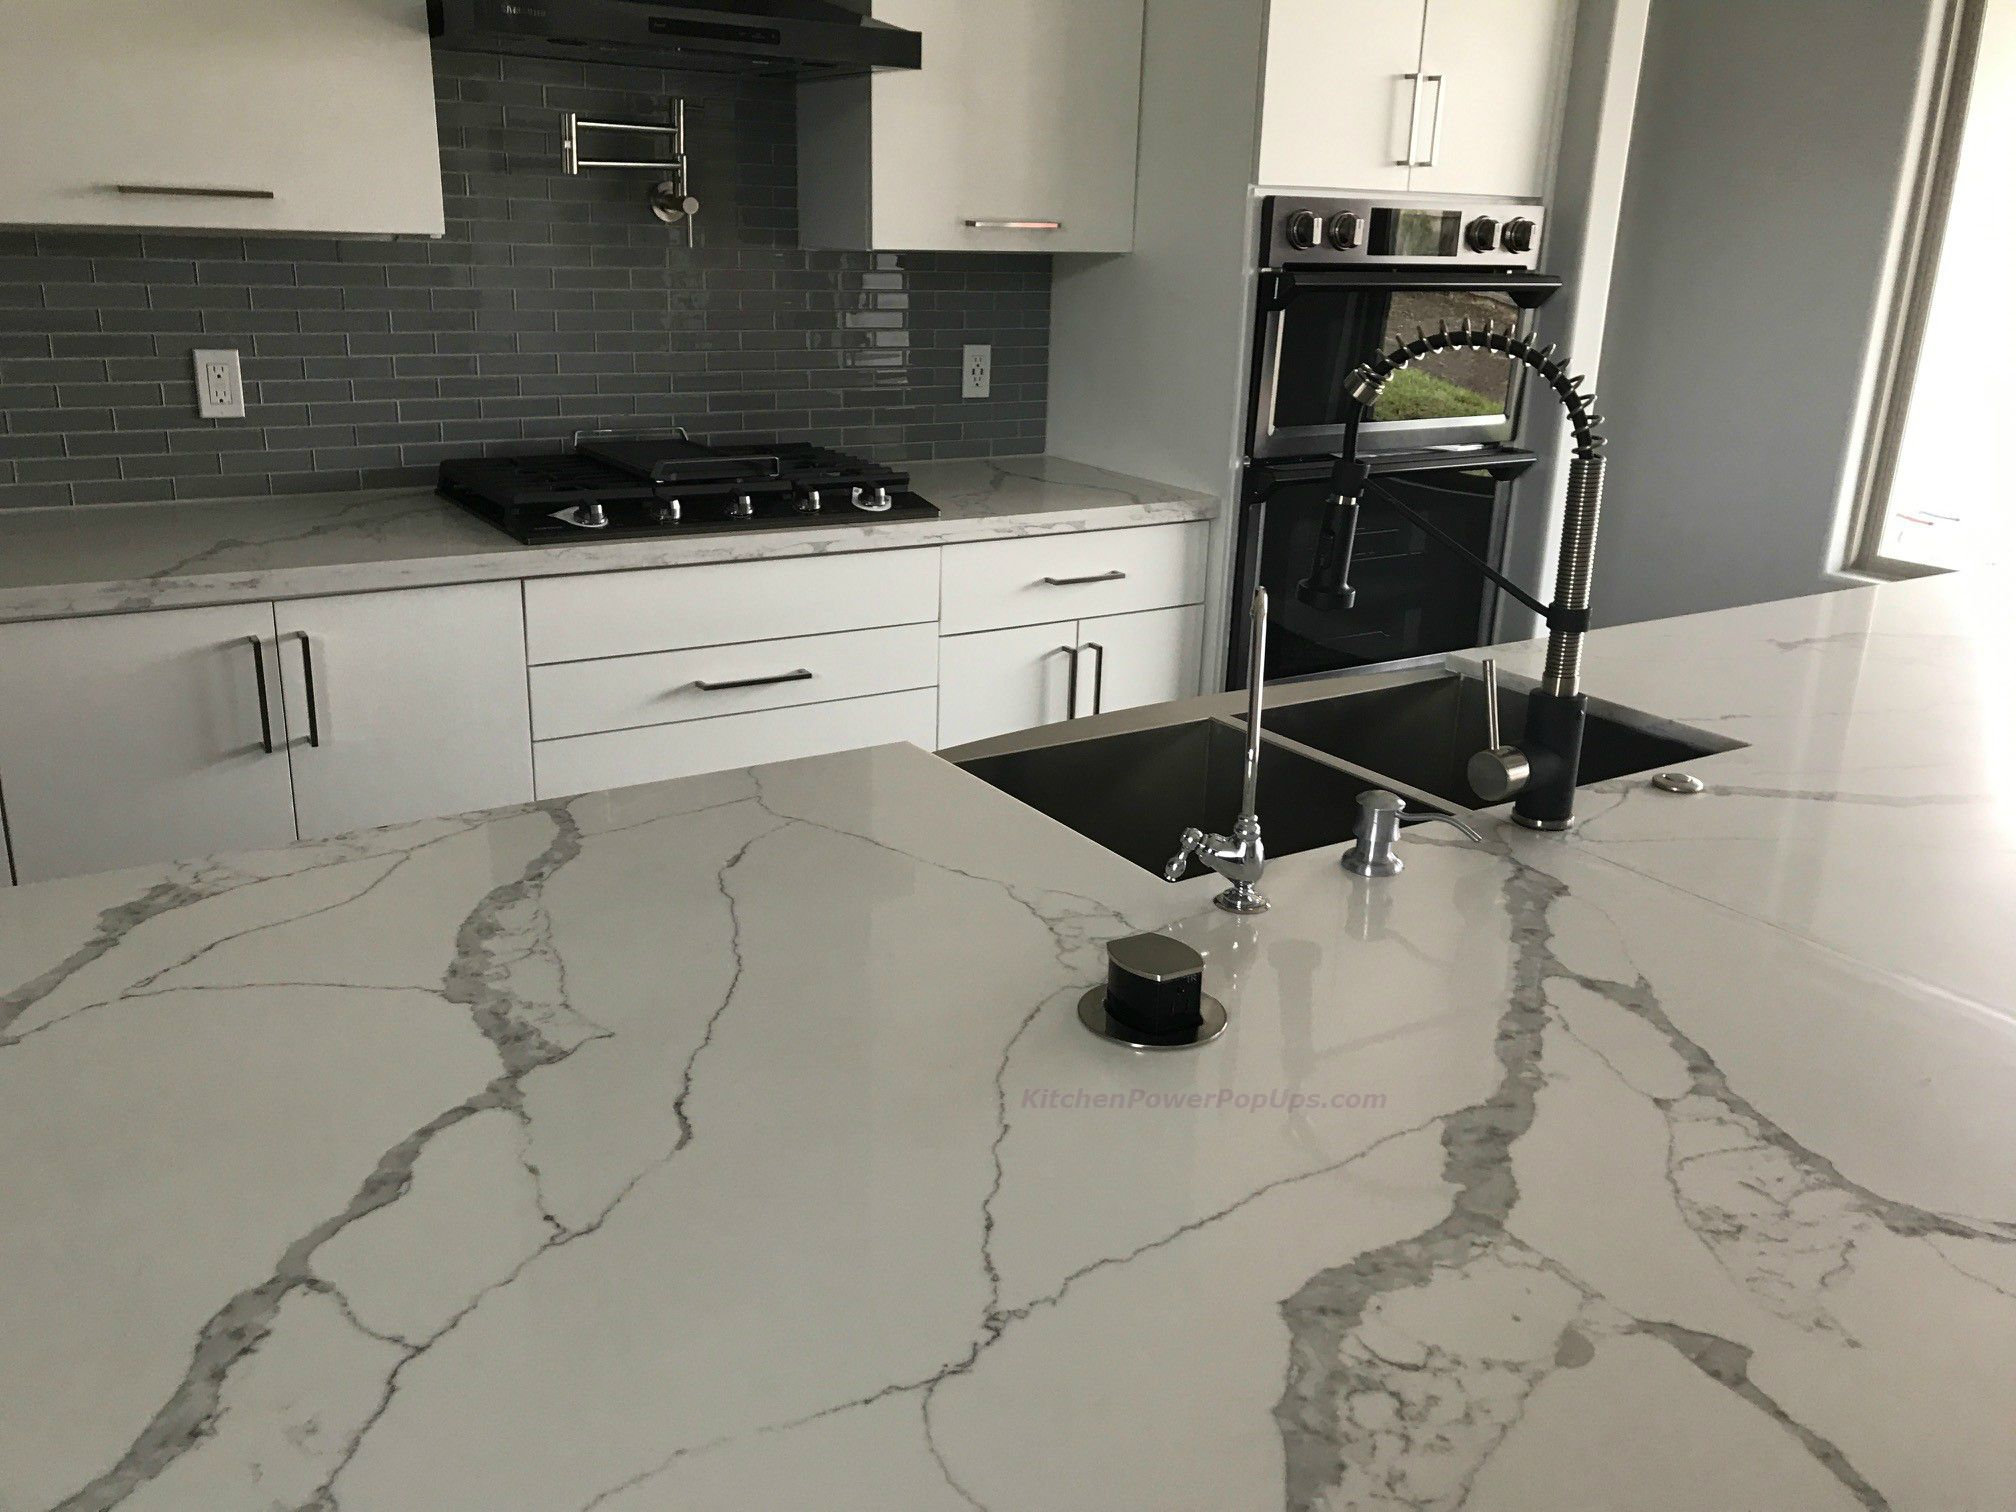 Countertop 2 Sided Spill Proof Pop Up 15a Outlet Surface Mount Nickel Countertops Pop Up Outlets Kitchen Remodel